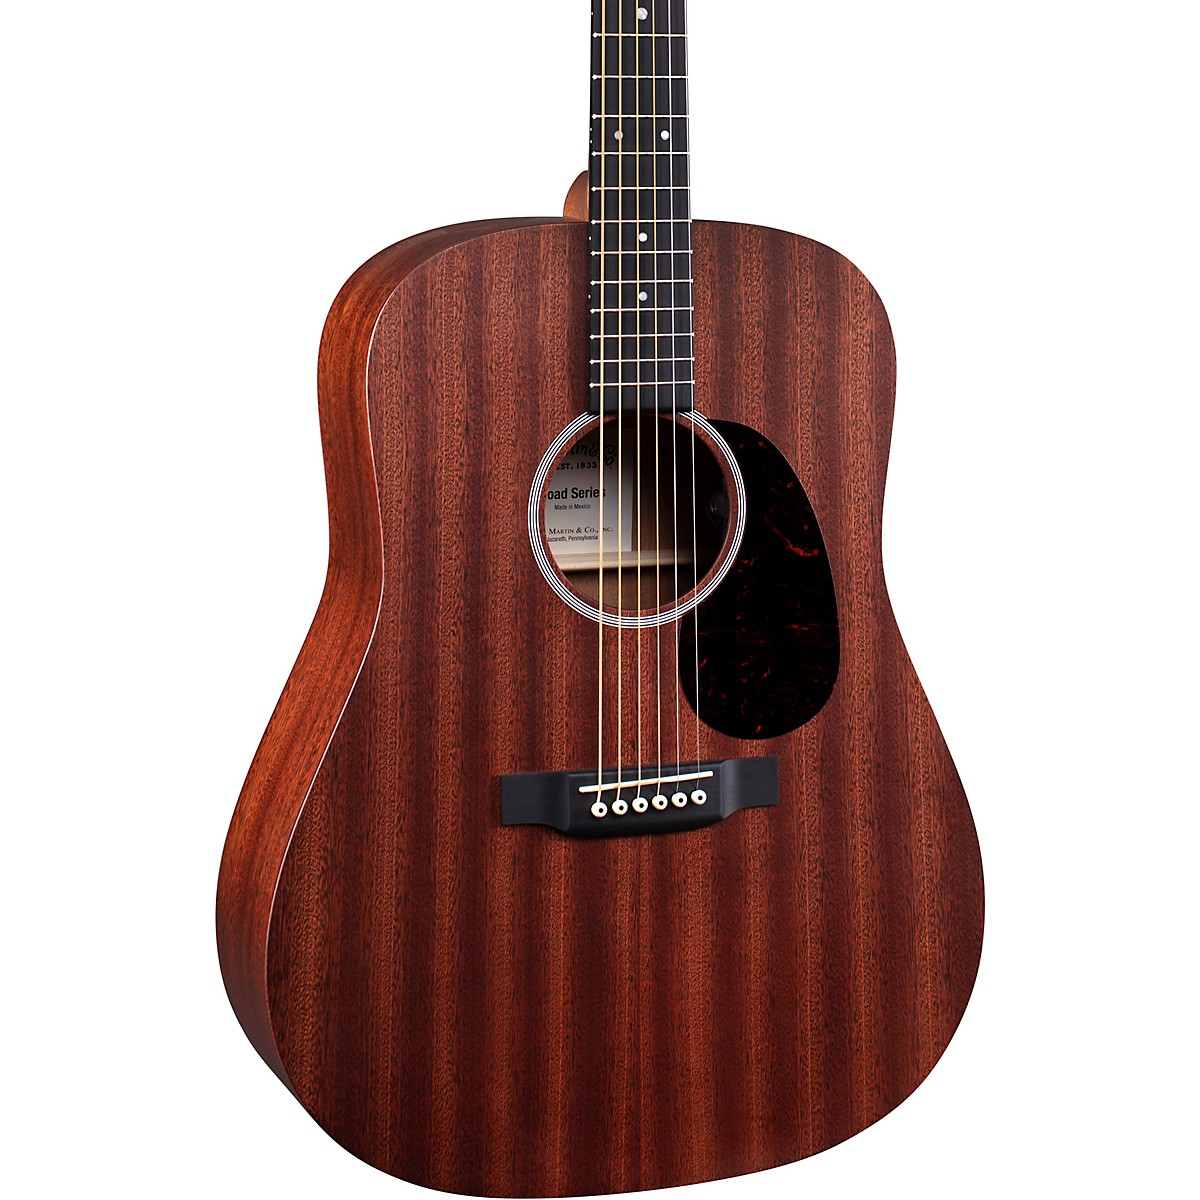 Martin D10E-01 Road Series Dreadnought Acoustic-Electric Guitar